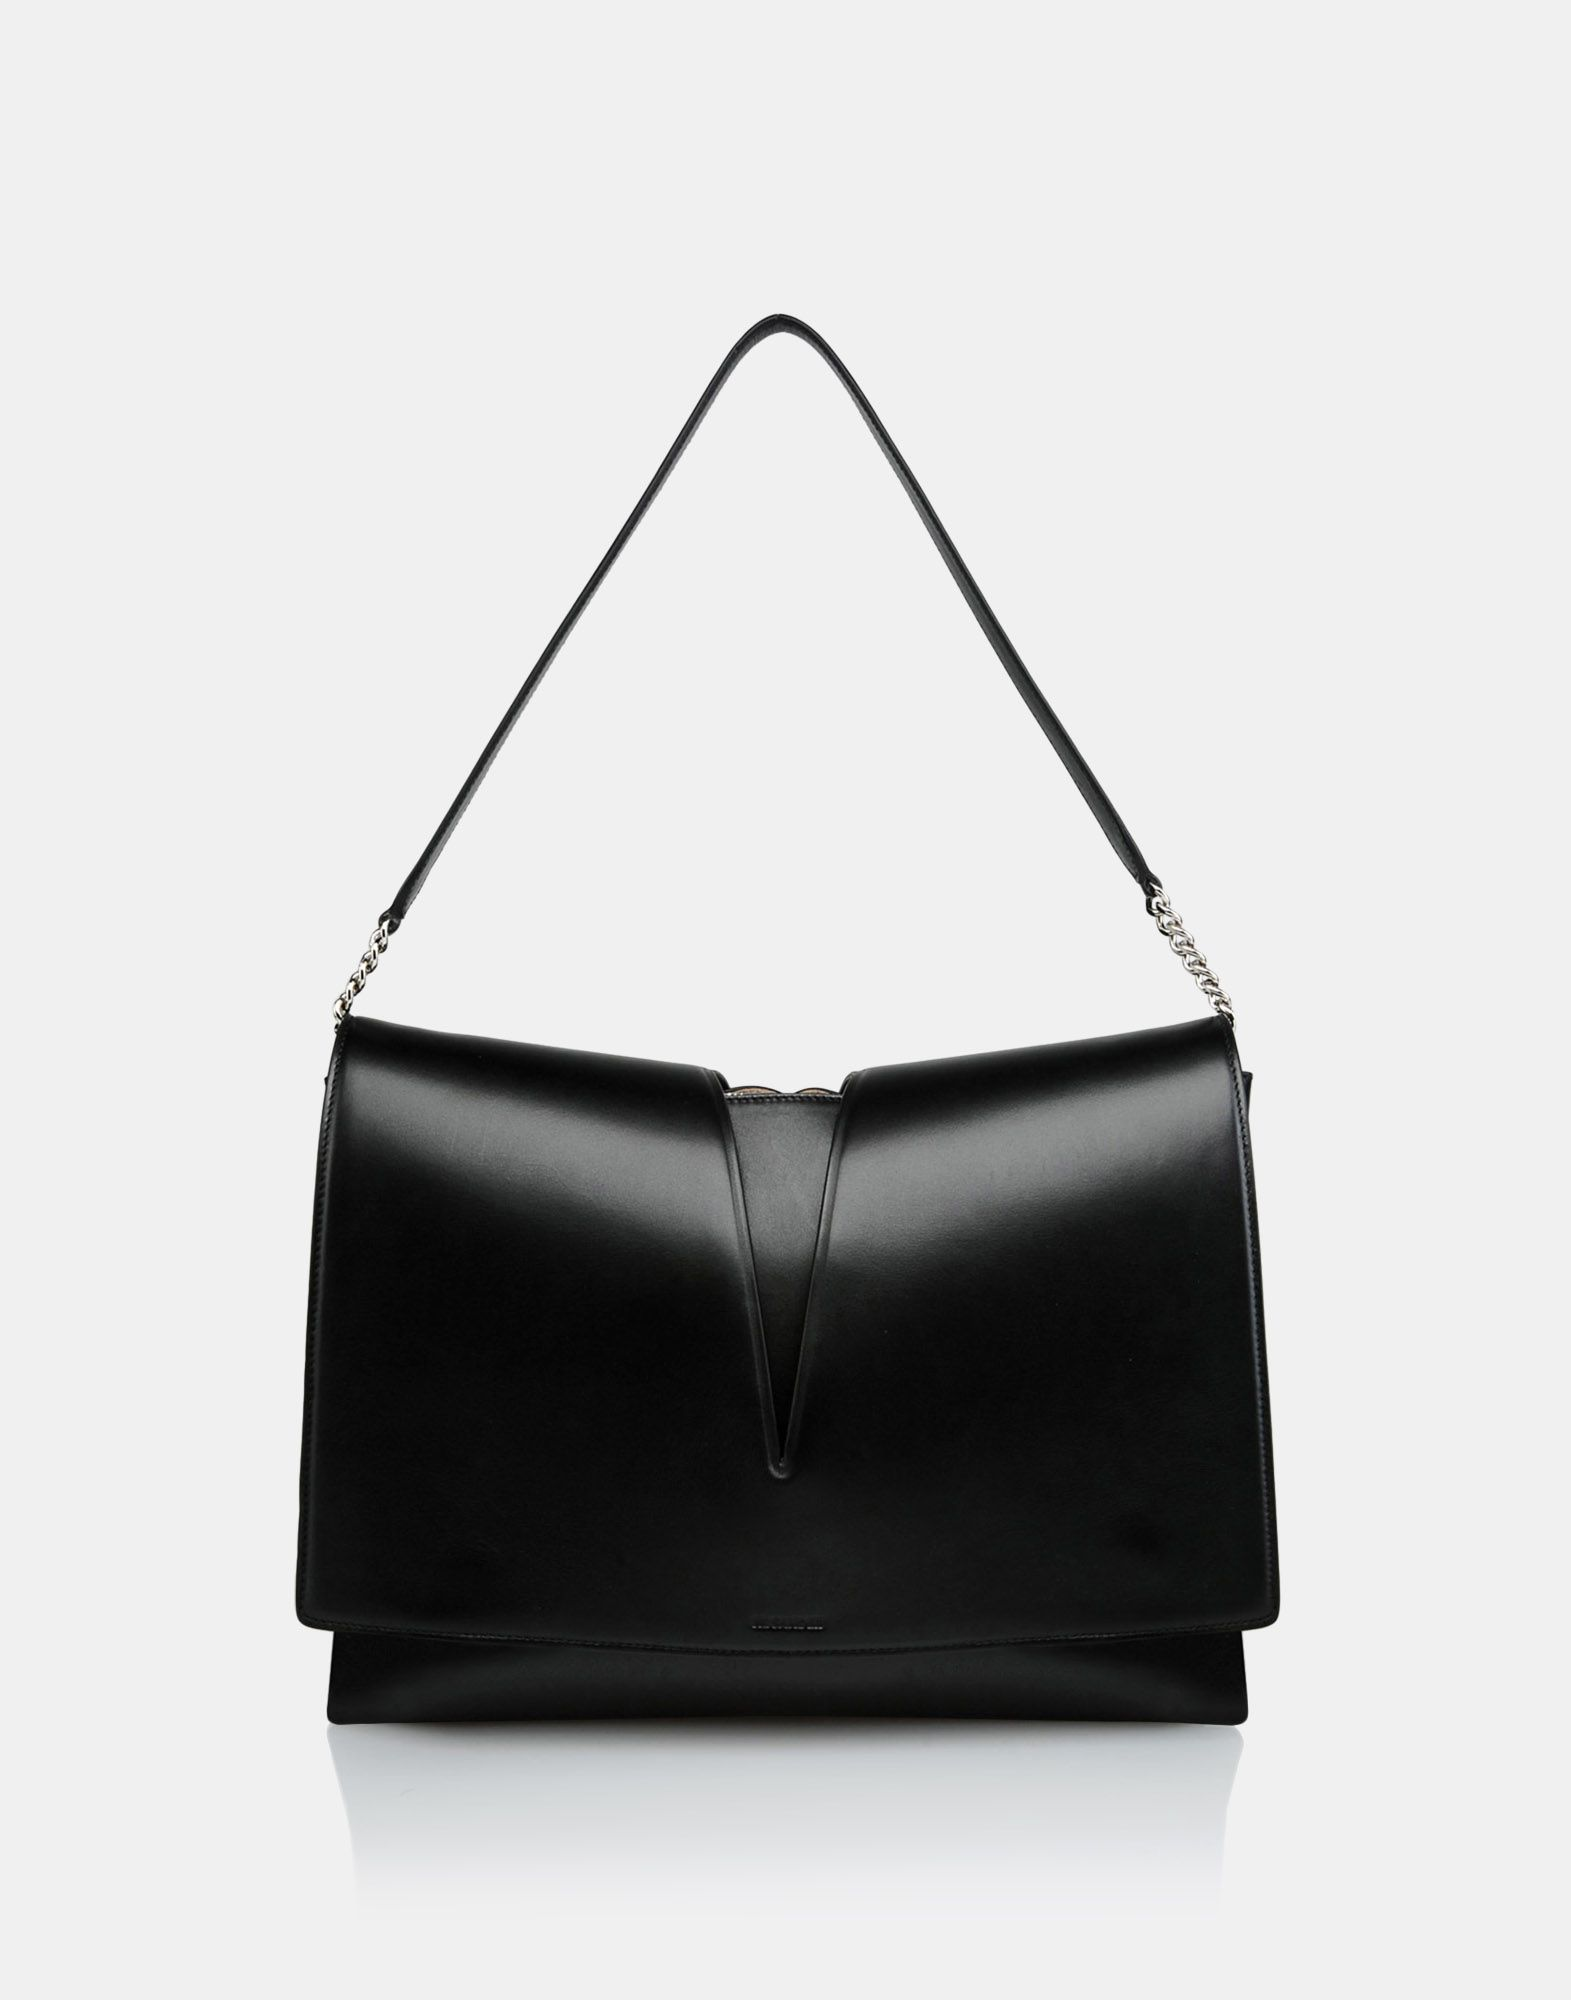 4640ad52fb Shoulder bag Women - Bags Women on Jil Sander Online Store